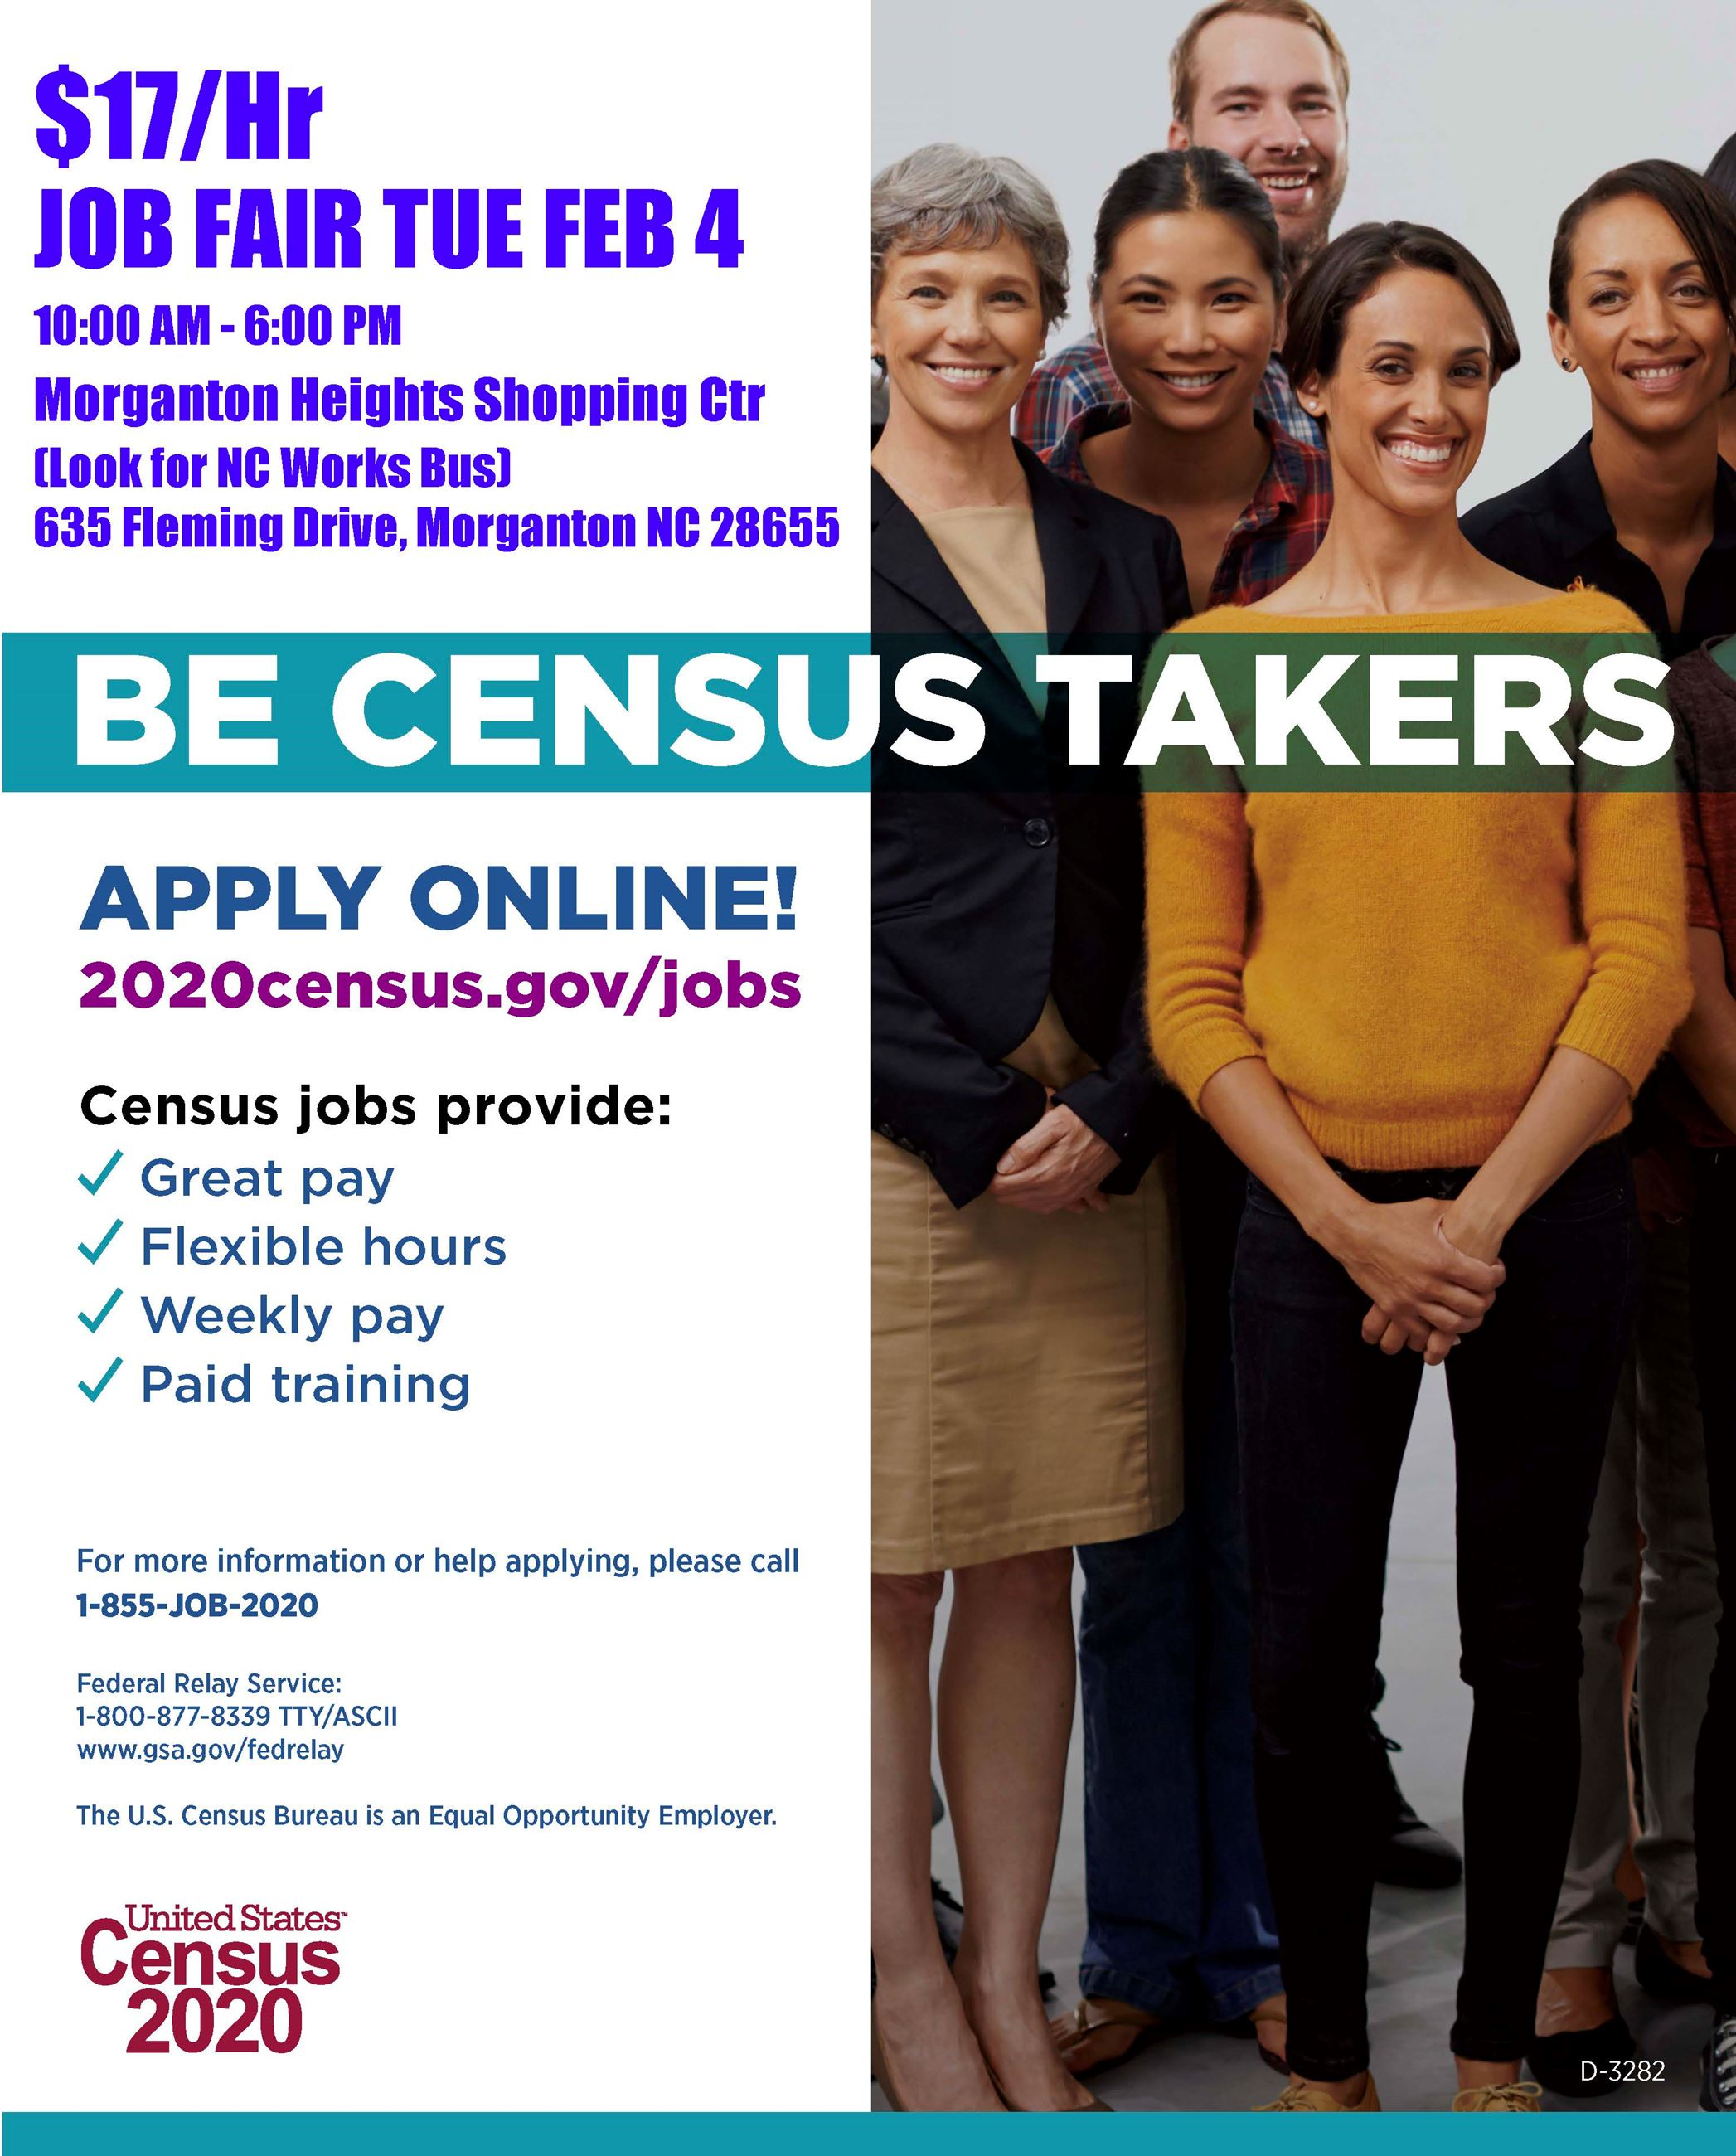 Census 2020 Job Fair - Feb 4